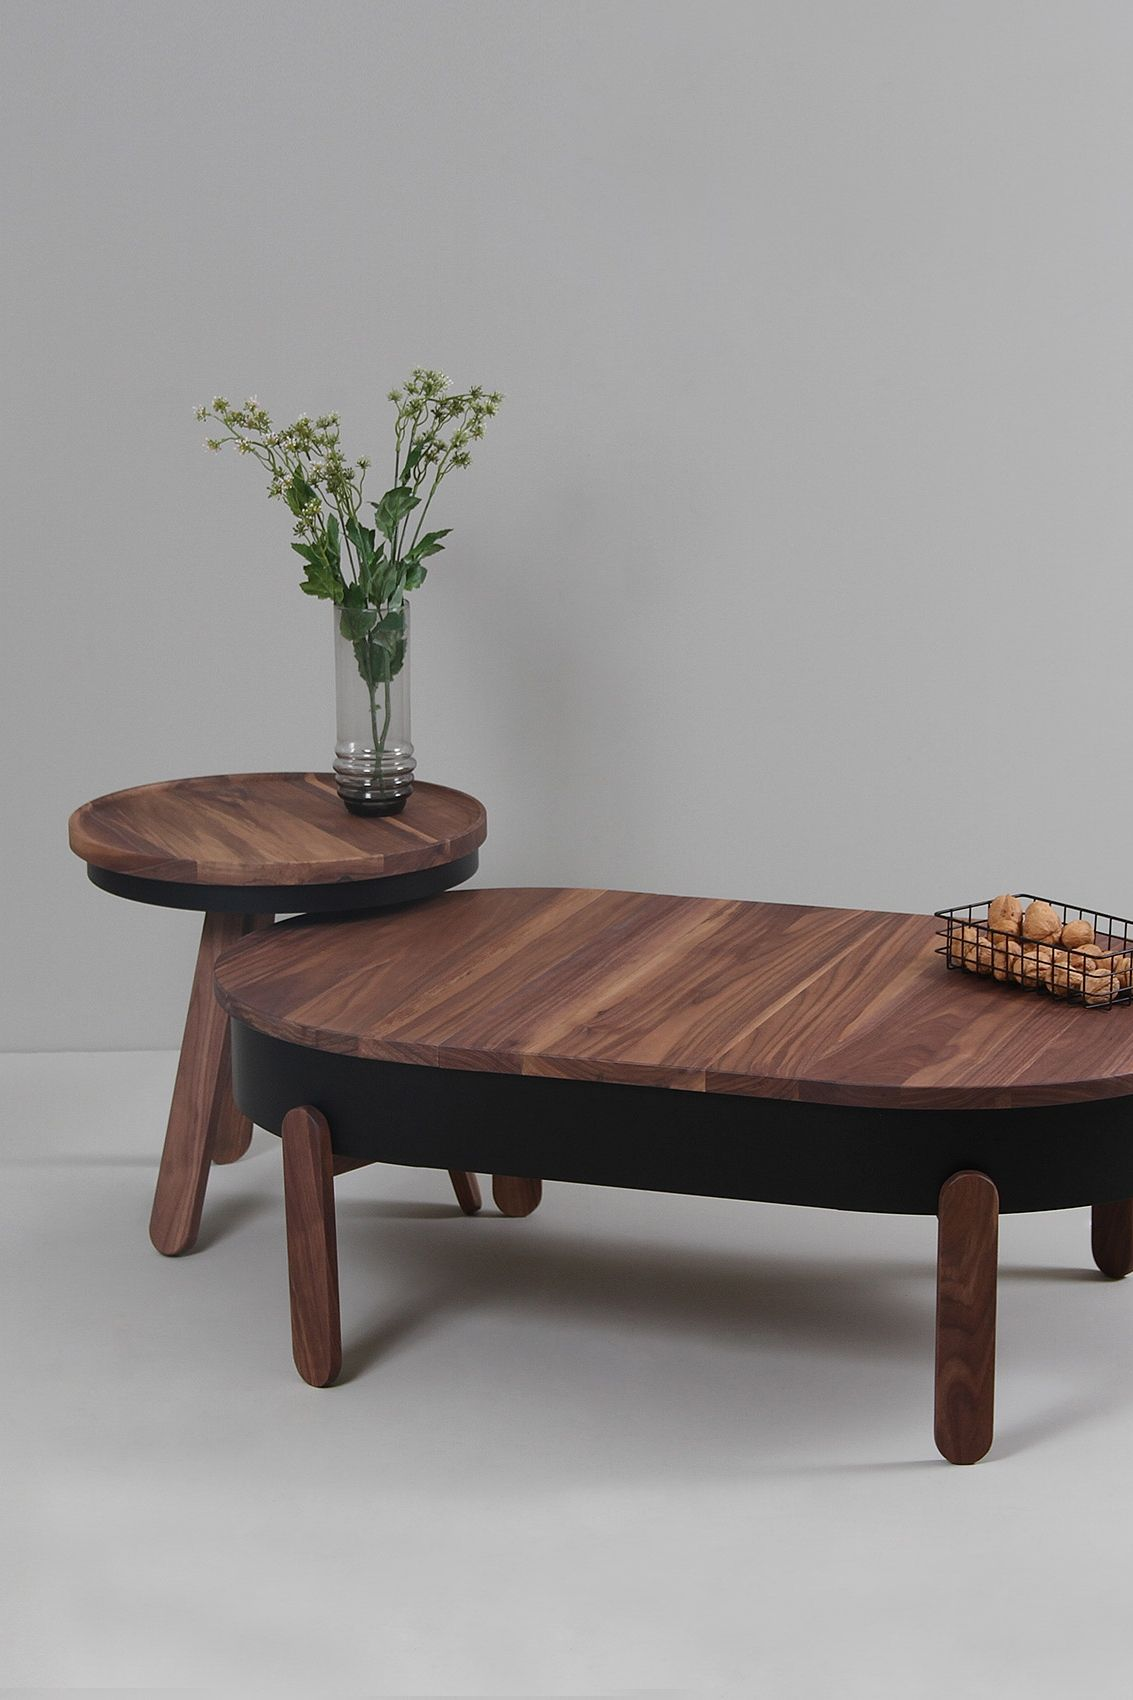 Long Low Coffee Table Coffee Table Design Long Coffee Tables Narrow Coffee Table [ 1024 x 1024 Pixel ]